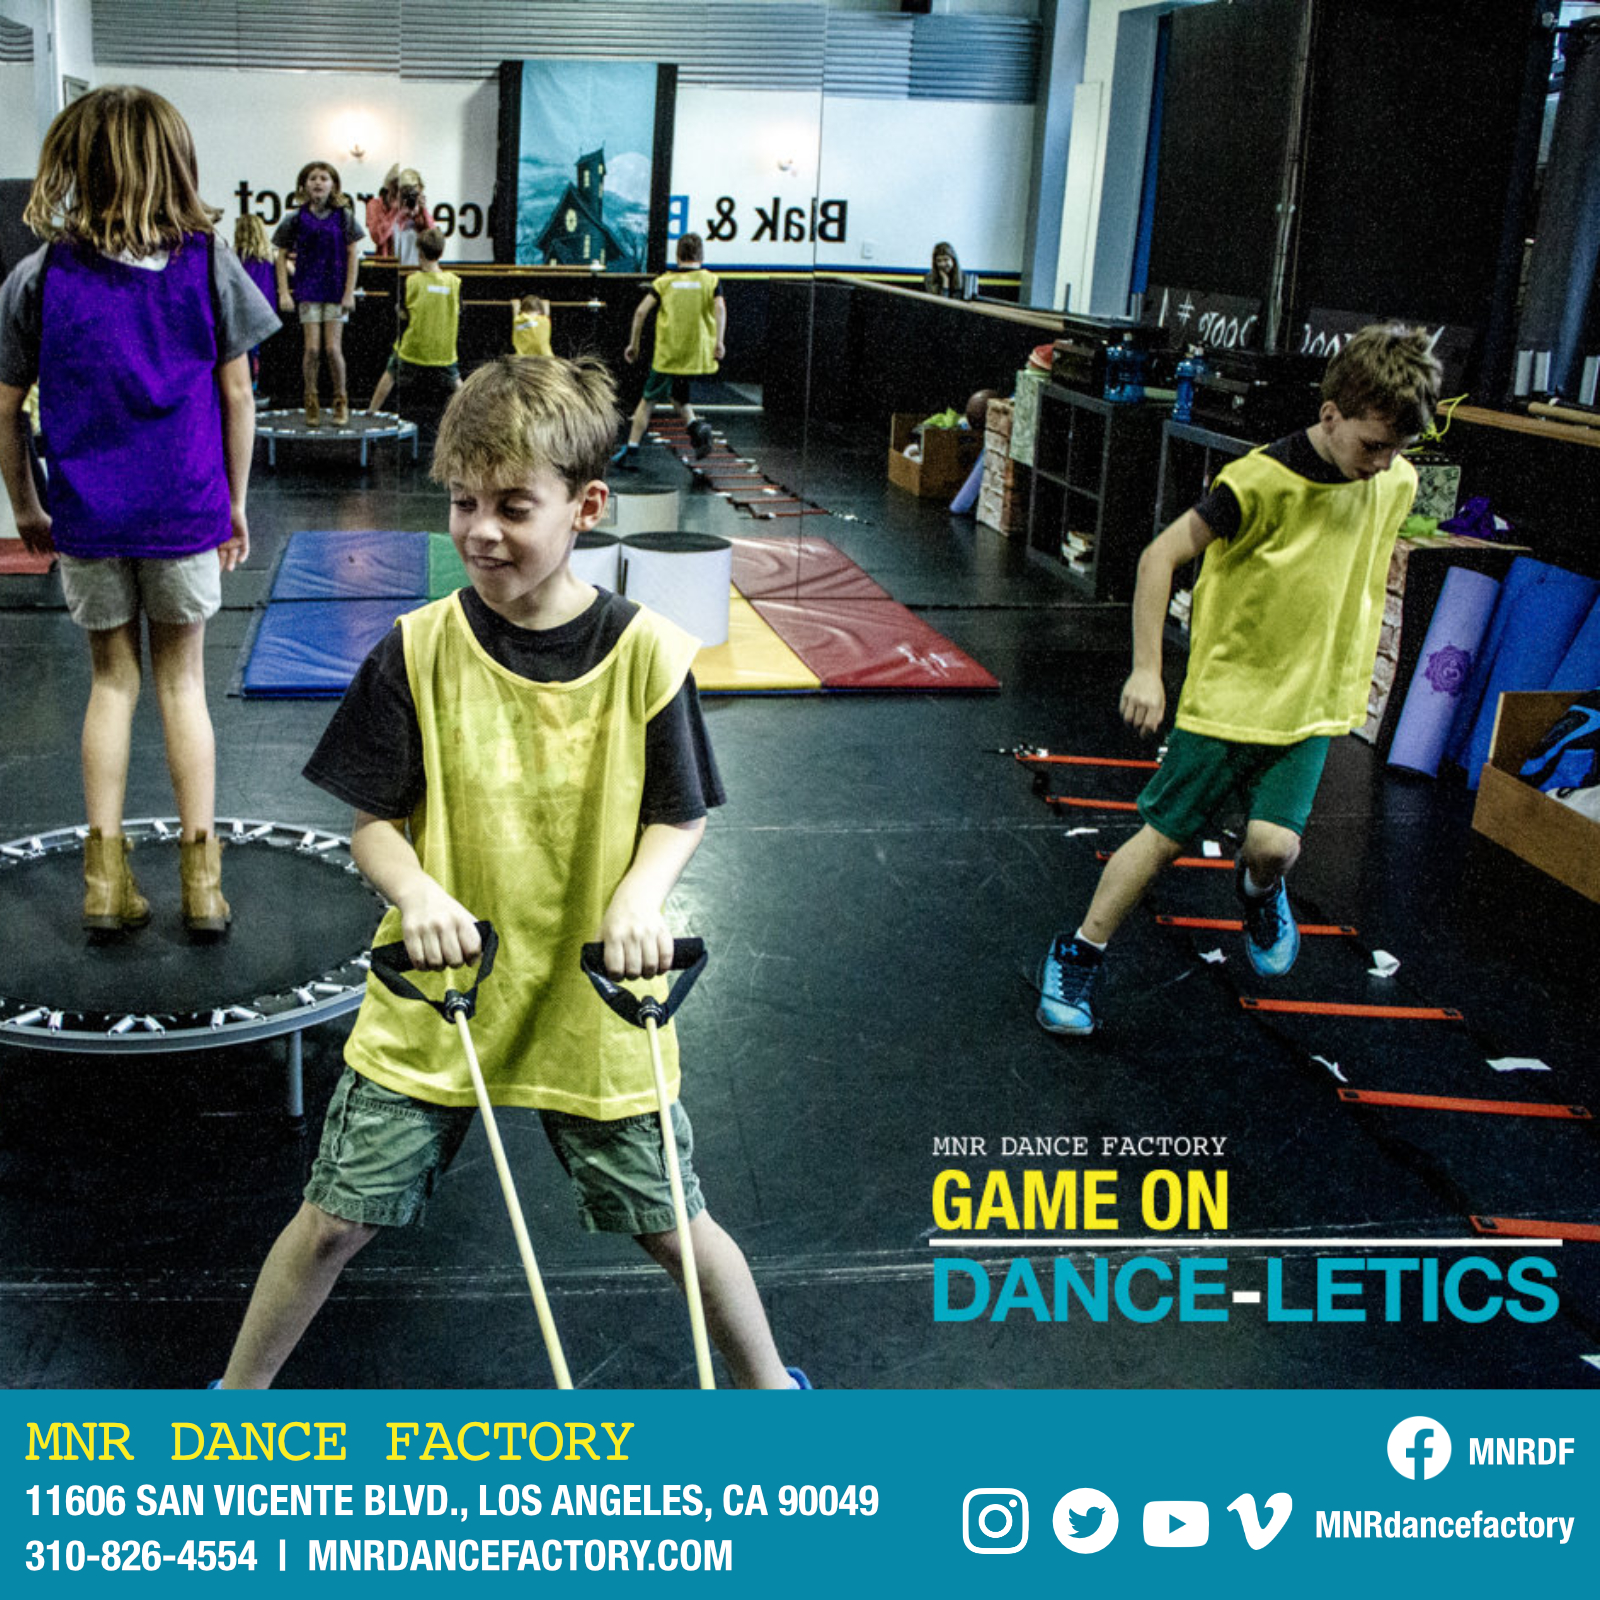 Game On DANCE-LETICS - Improves overall fitness, endurance, flexibility, quickness, balance and athletic ability, while at the same time having a blast learning the latest dance moves and increasing self confidence. Geared to grade-school boys and girls ages 6 to 16 who participate (or aspire to participate) in athletics, as well as, all boys and girls that just love to dance and have fun with other like minded kids.CLICK HERE TO LEARN MORE